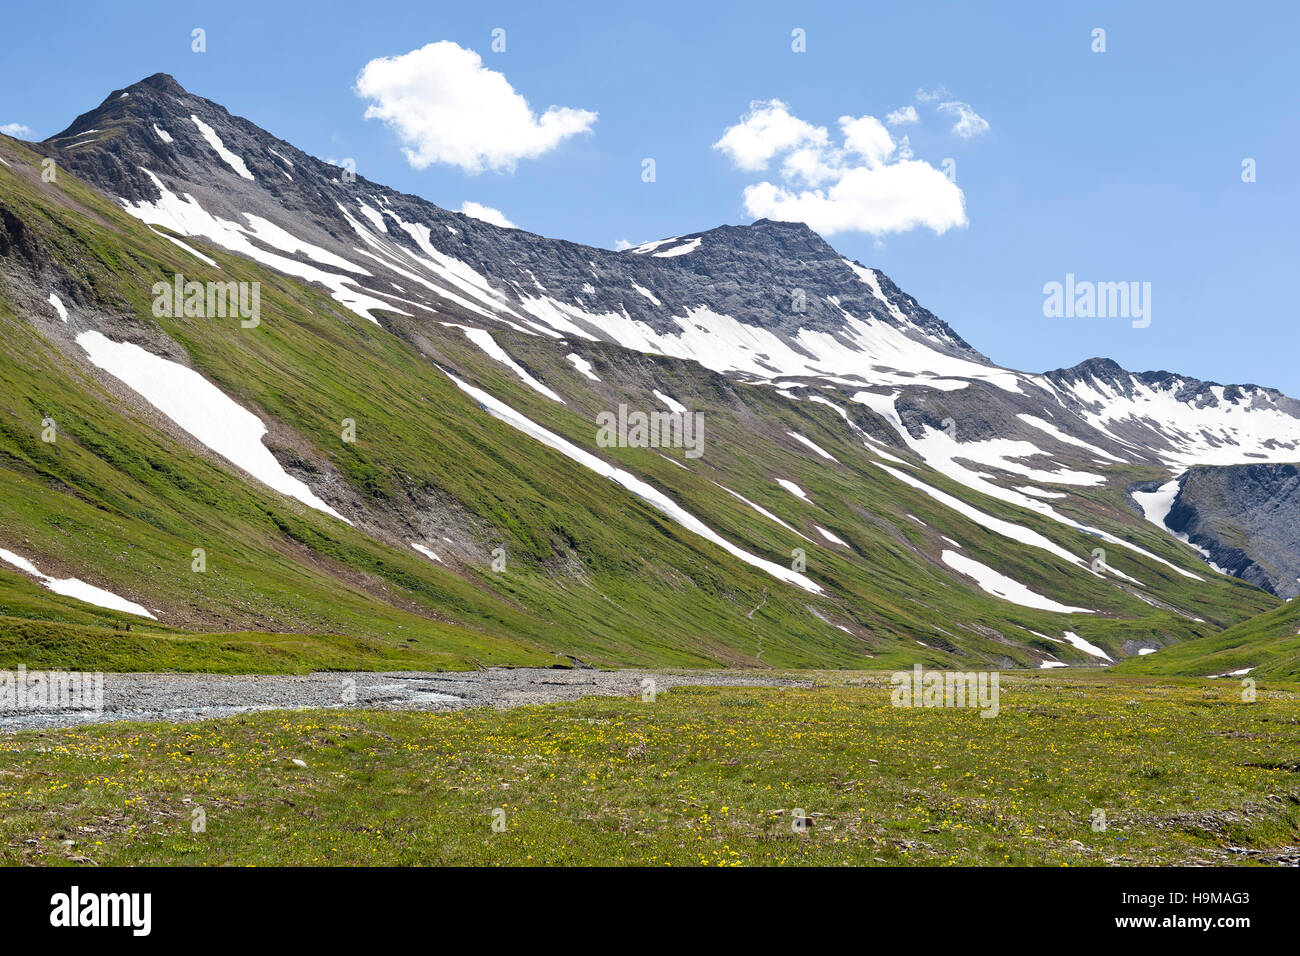 Val Veny Valle d'Aosta Italy rock snow mountains green river summer nature - Stock Image